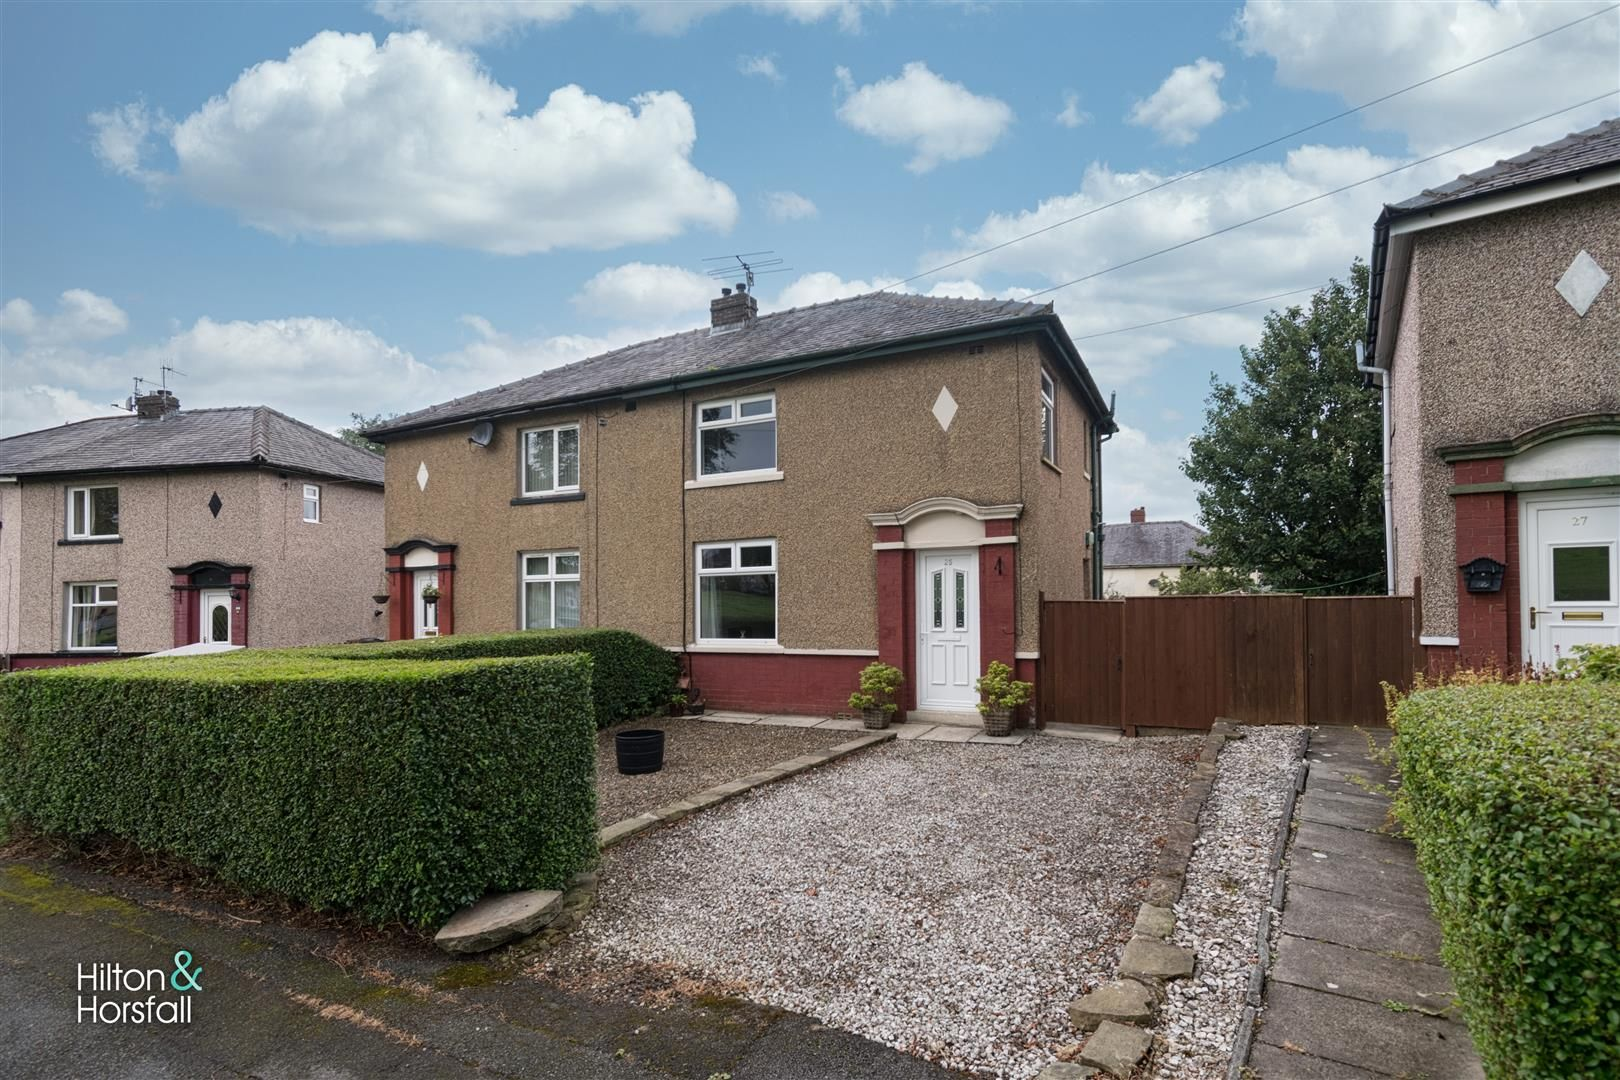 Property photo 1 of 12. Ringstone Crescent